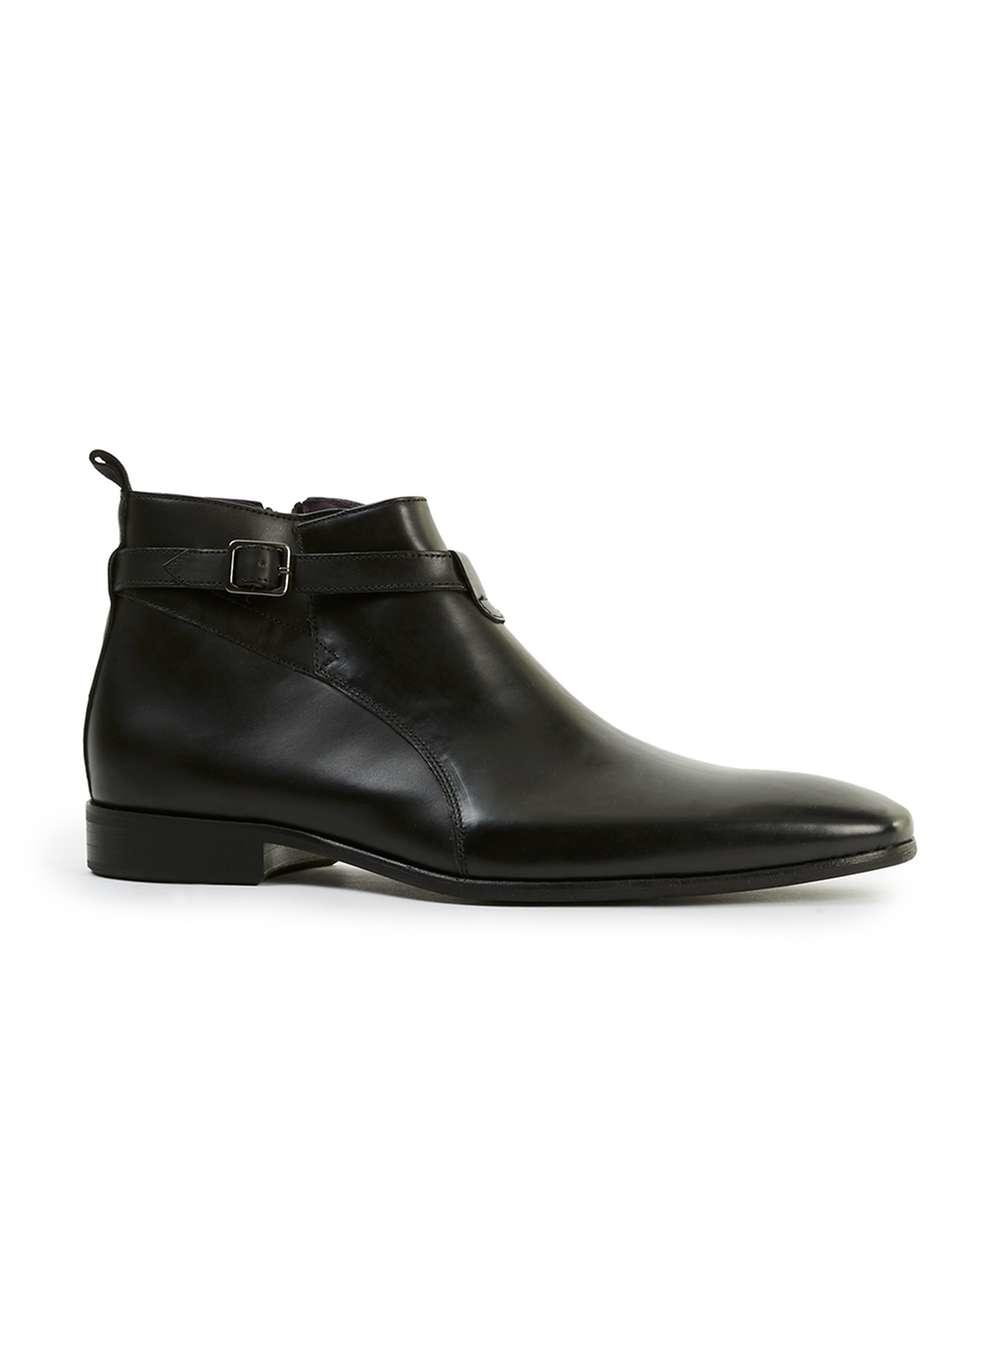 topman black leather buckle ankle boots in black for